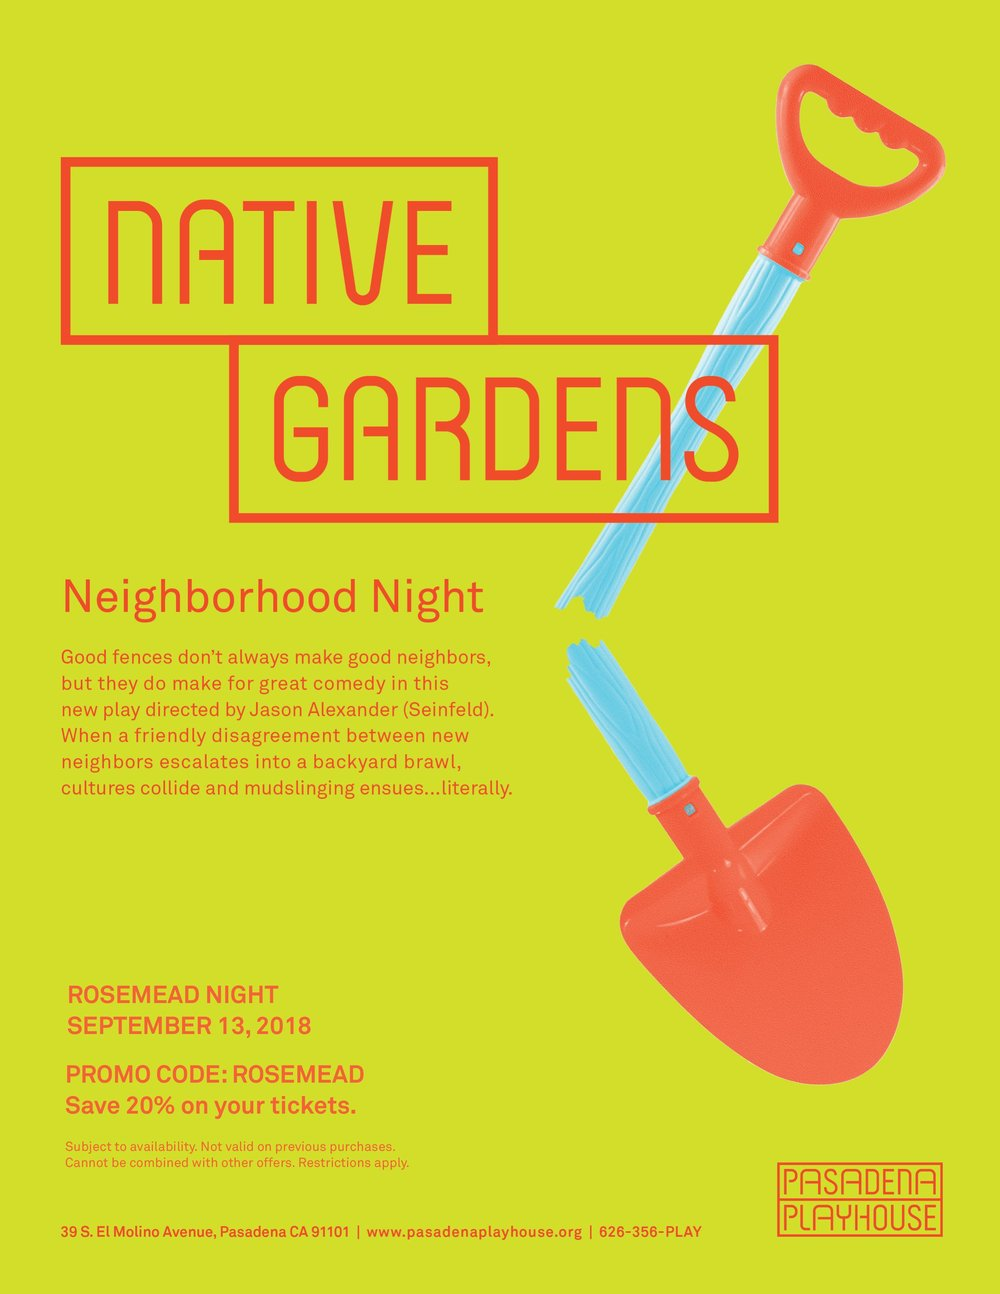 native gardens: rosemead night - September 13th, 2018